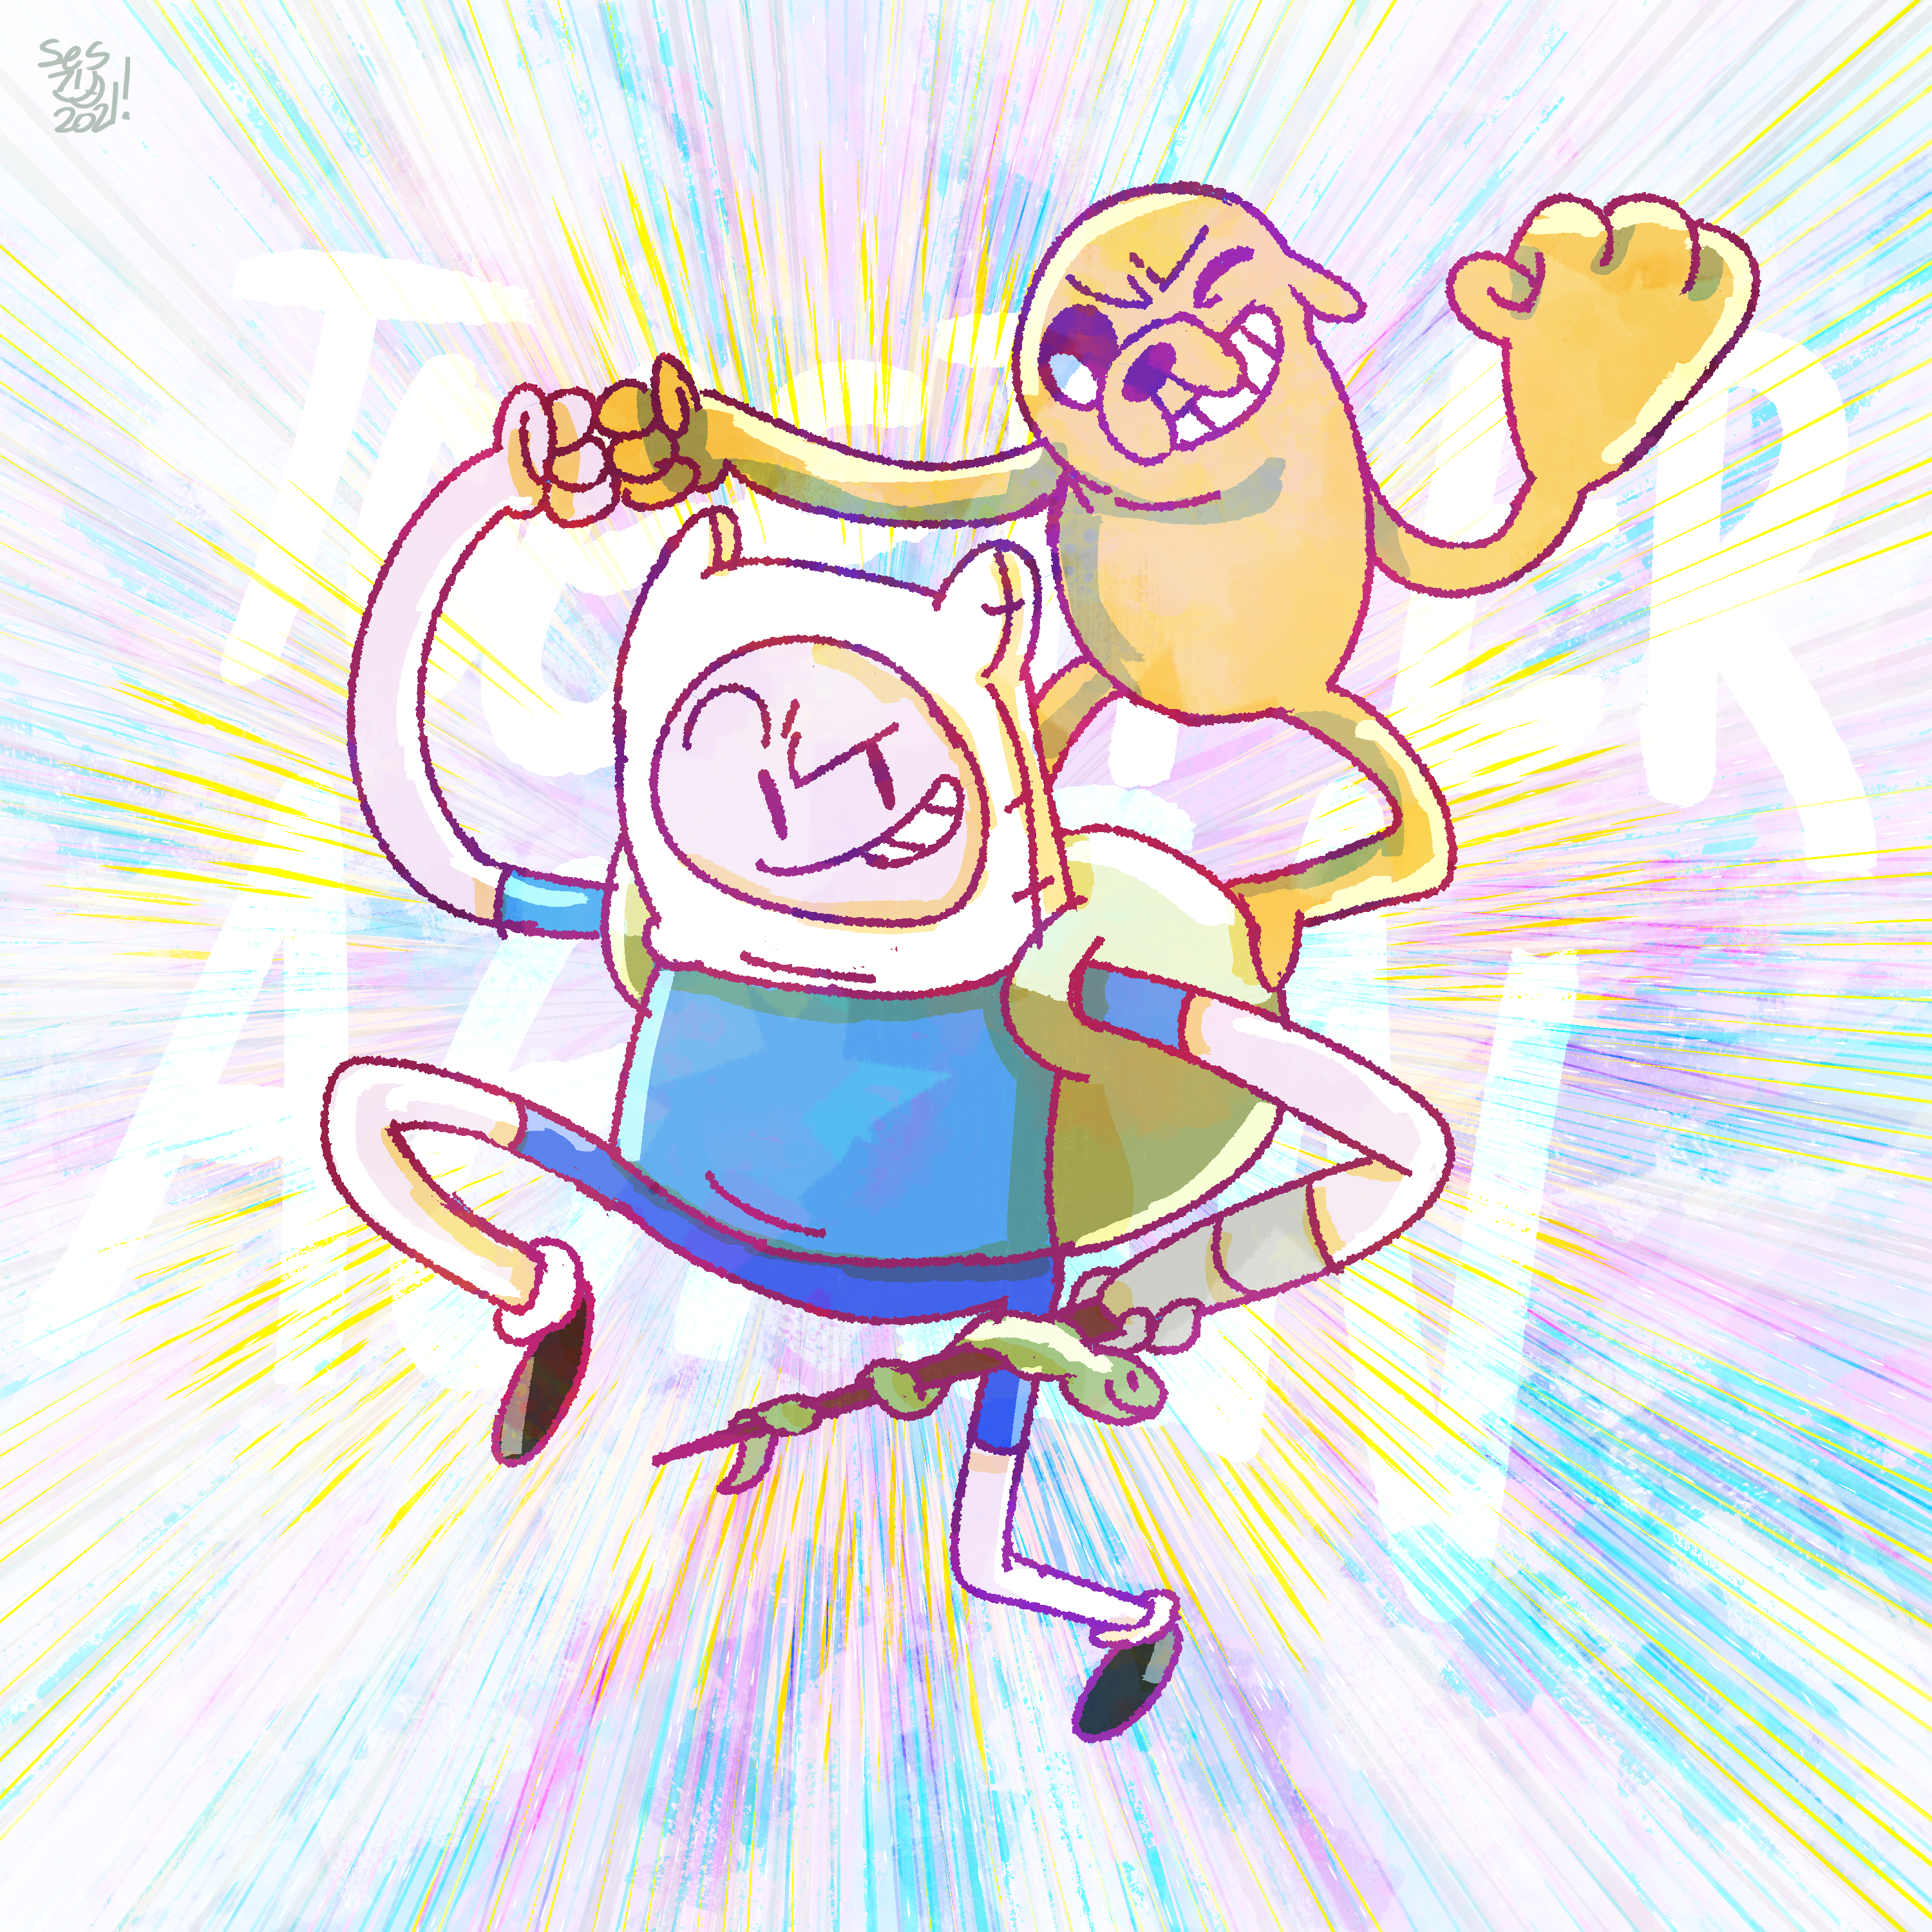 FINN AND JAKE ARE TOGETHER AGAIN